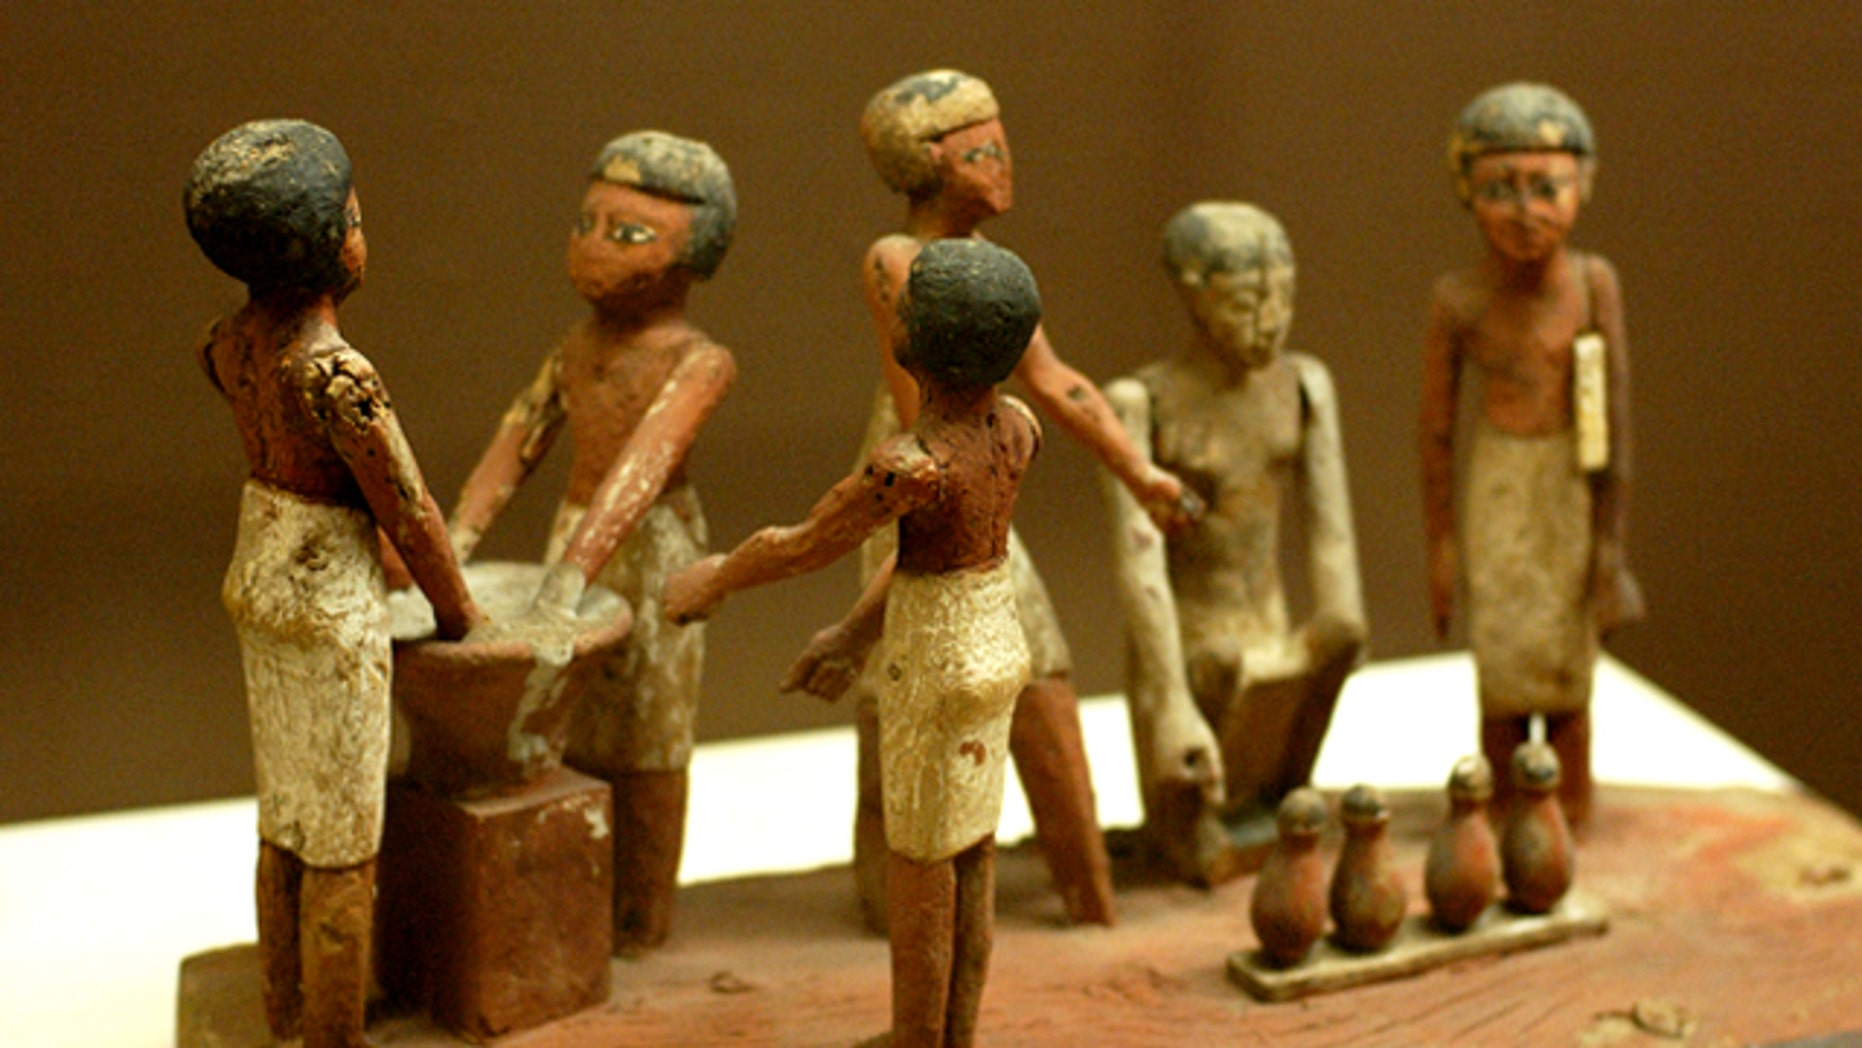 An Egyptian wooden model of beer making in ancient Egypt, located at the Rosicrucian Egyptian Museum in San Jose, California.